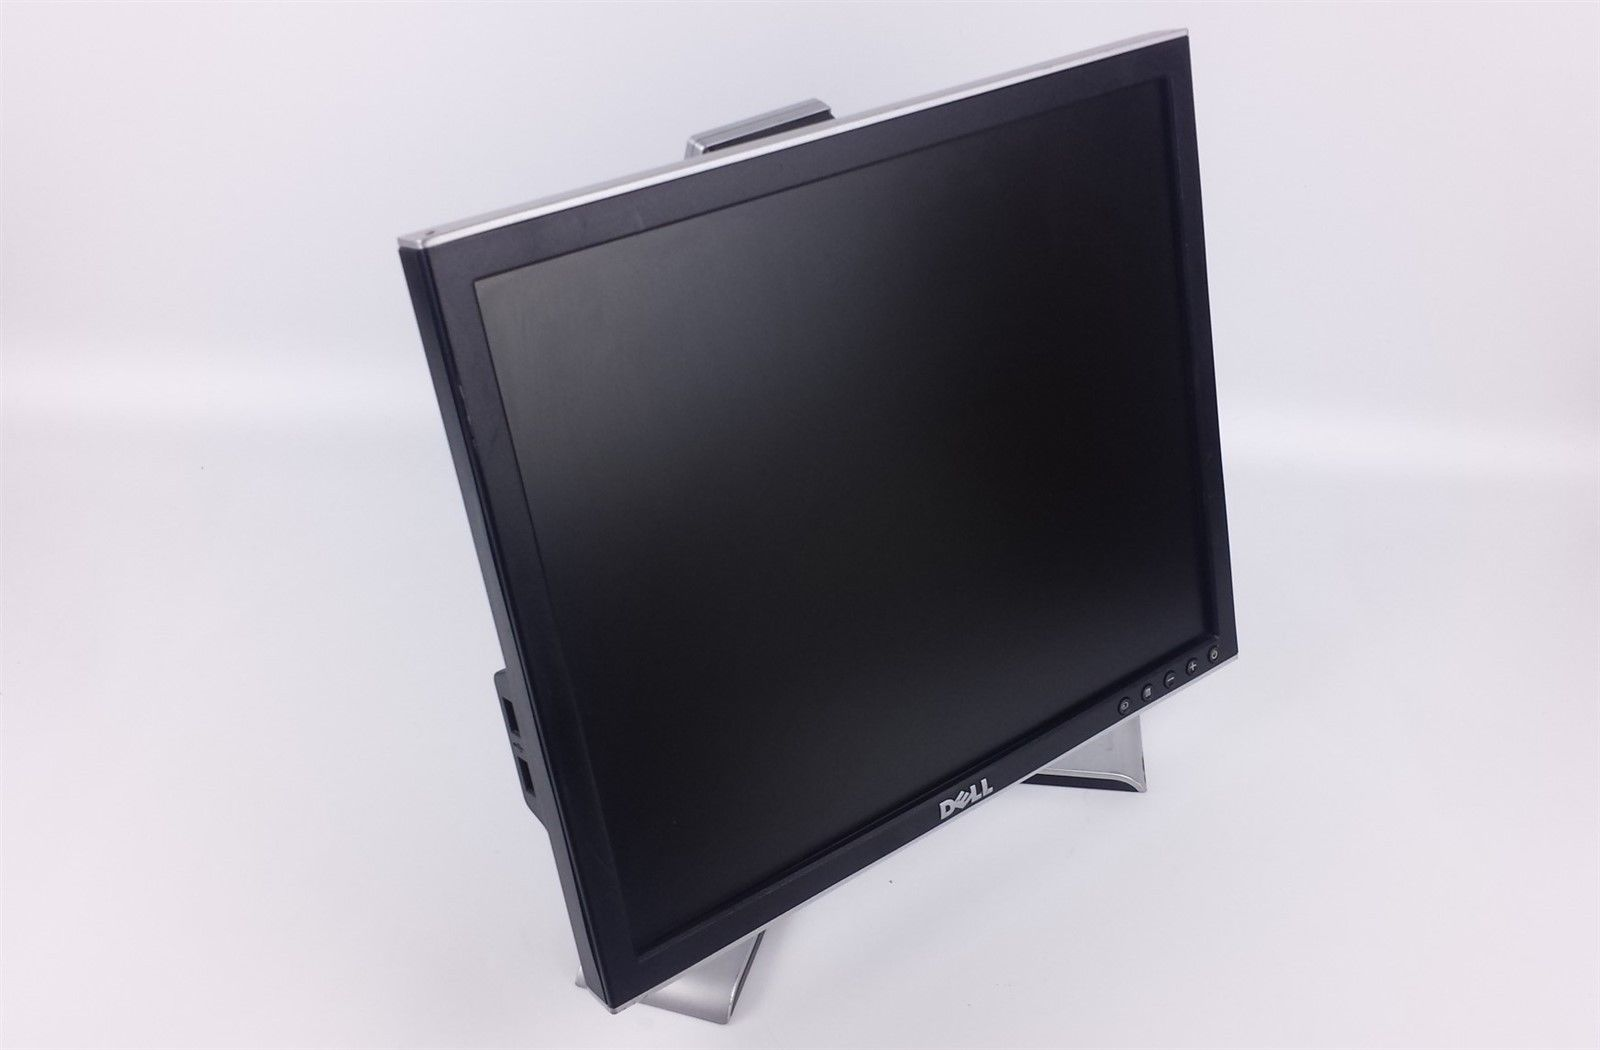 "Dell UltraSharp 1707FPc Flat Screen LCD Computer Monitor 17"" CC352 w/ Cables"